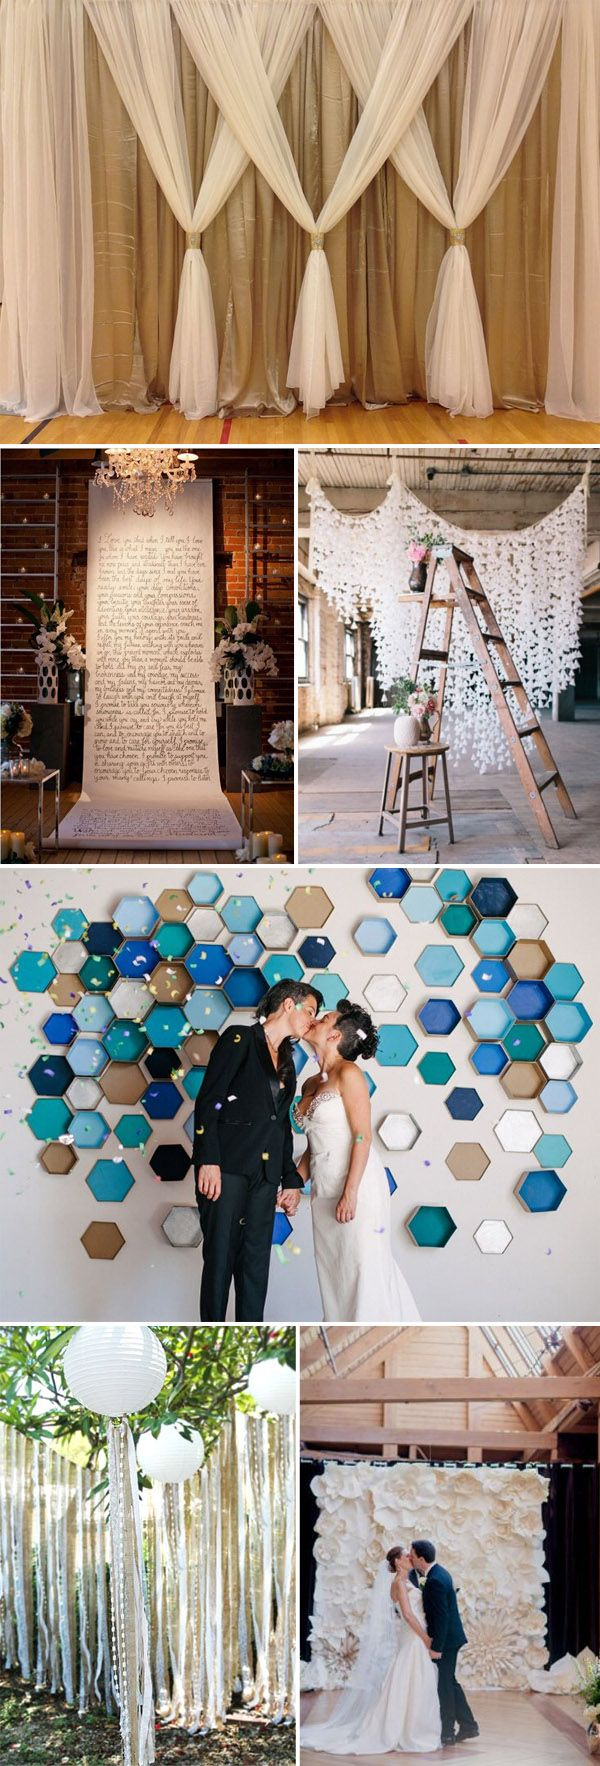 Best 25 diy wedding backdrop ideas on pinterest vintage wedding top 20 unique backdrops for wedding ceremony ideas junglespirit